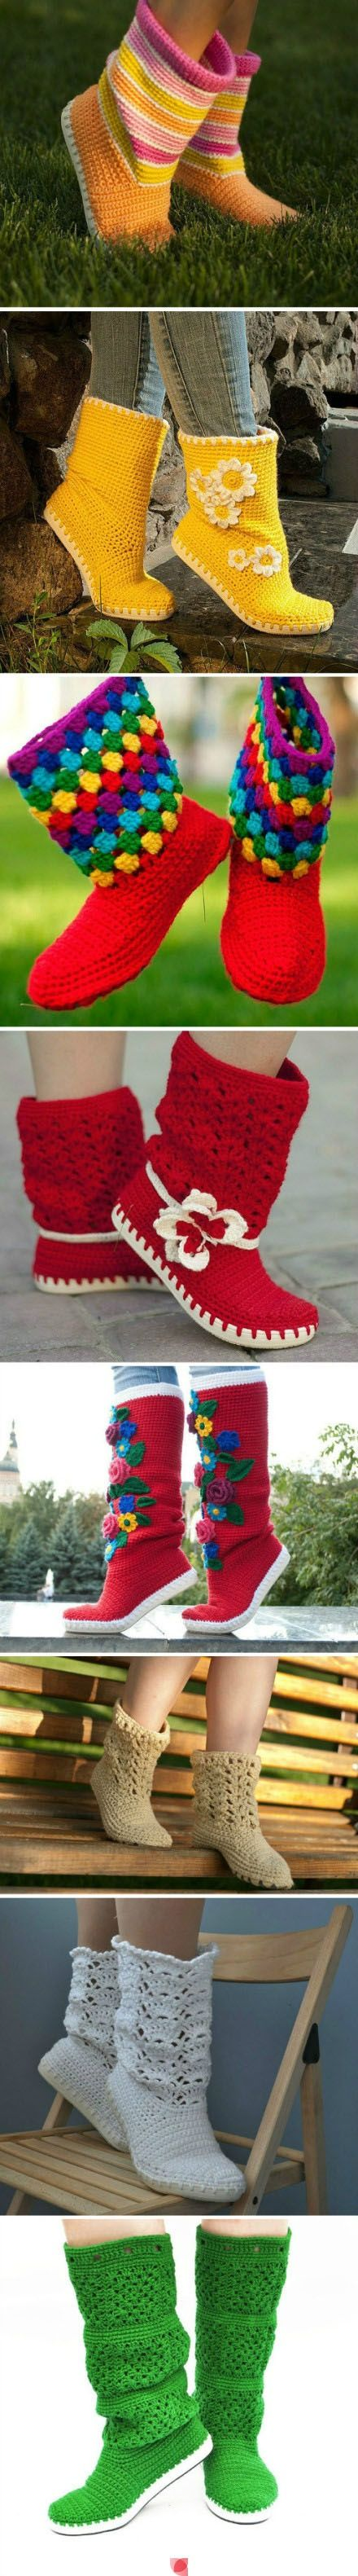 Best 25 crochet slipper boots ideas on pinterest crochet boots best 25 crochet slipper boots ideas on pinterest crochet boots crochet flip flops and diy crochet bankloansurffo Image collections